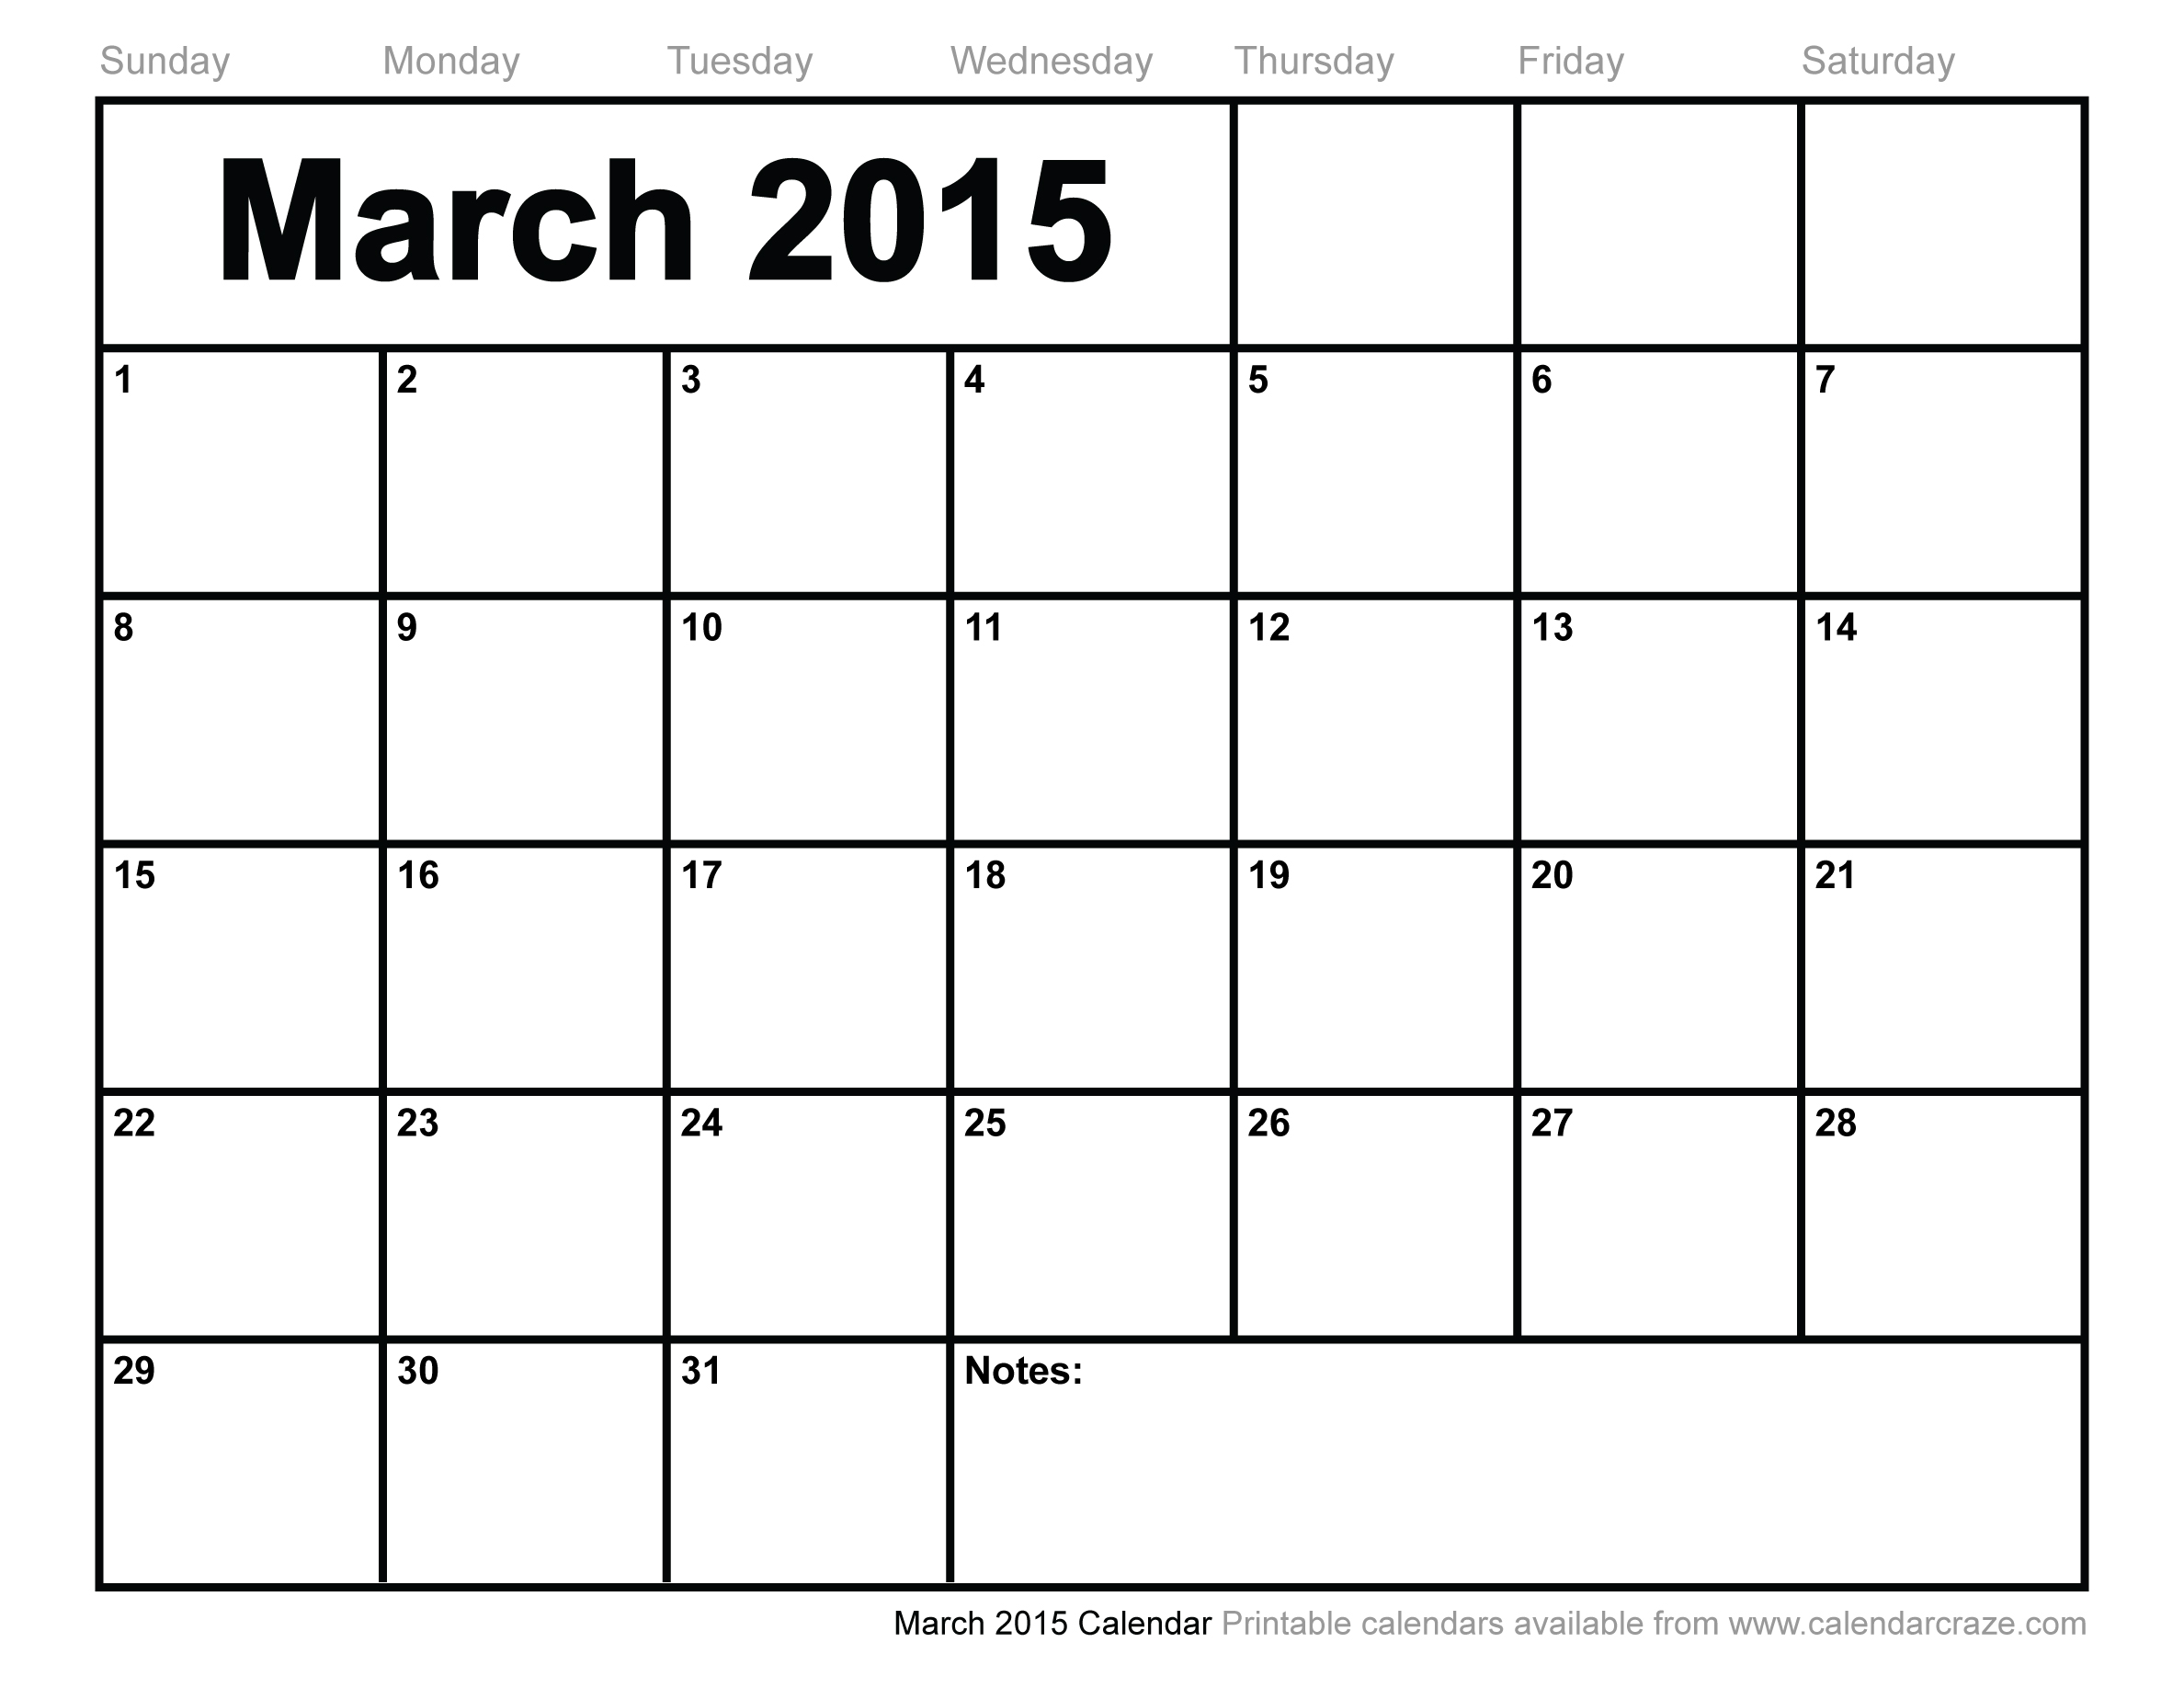 7 Images of March 2015 Calendar Printable Free